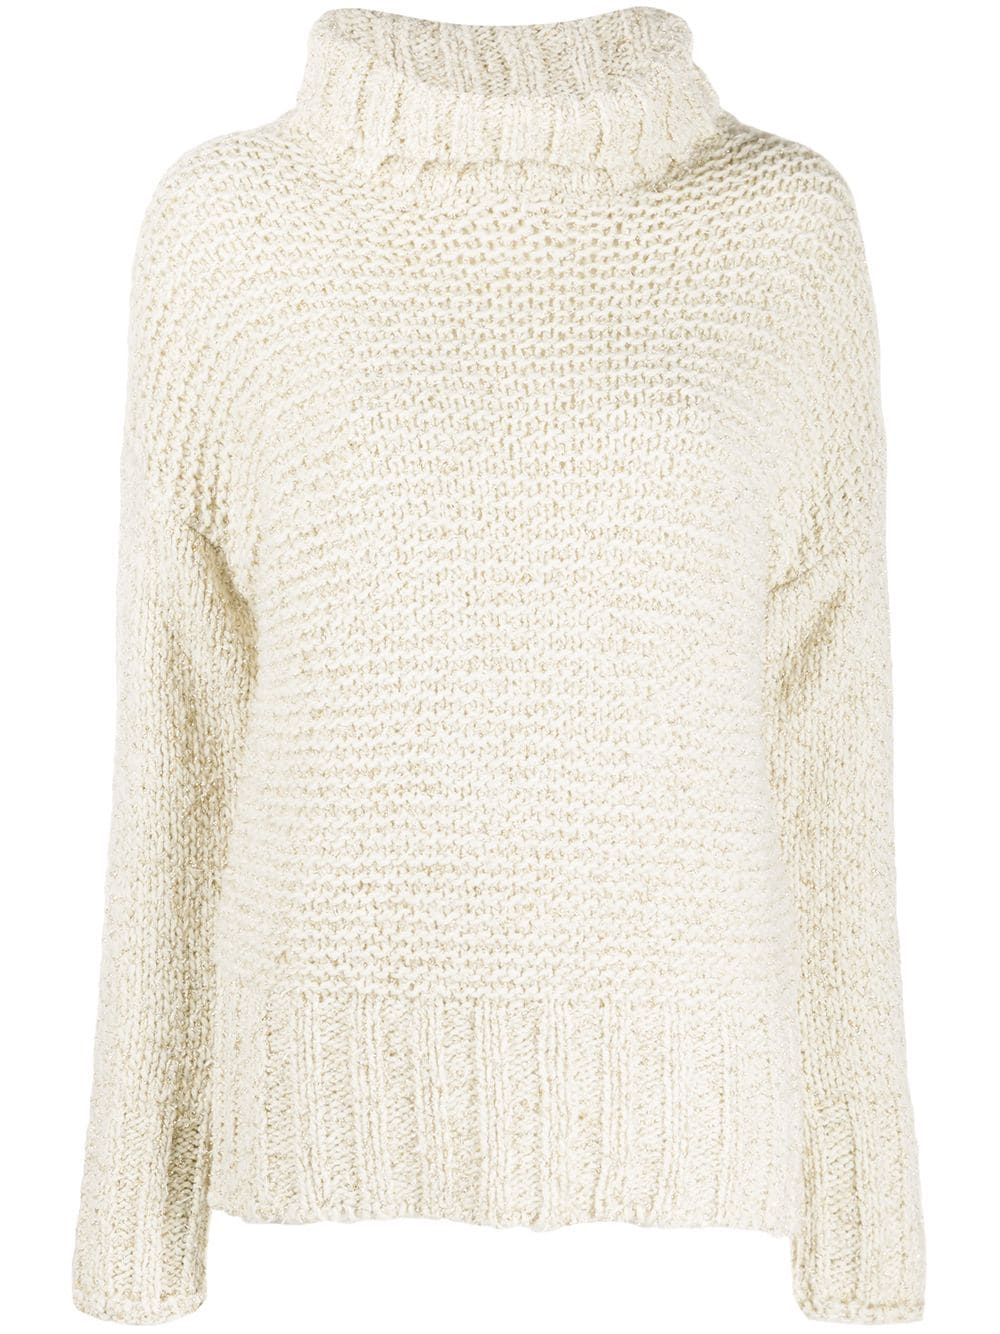 Snobby Sheep Chunky Knit Jumper #chunkyknitjumper